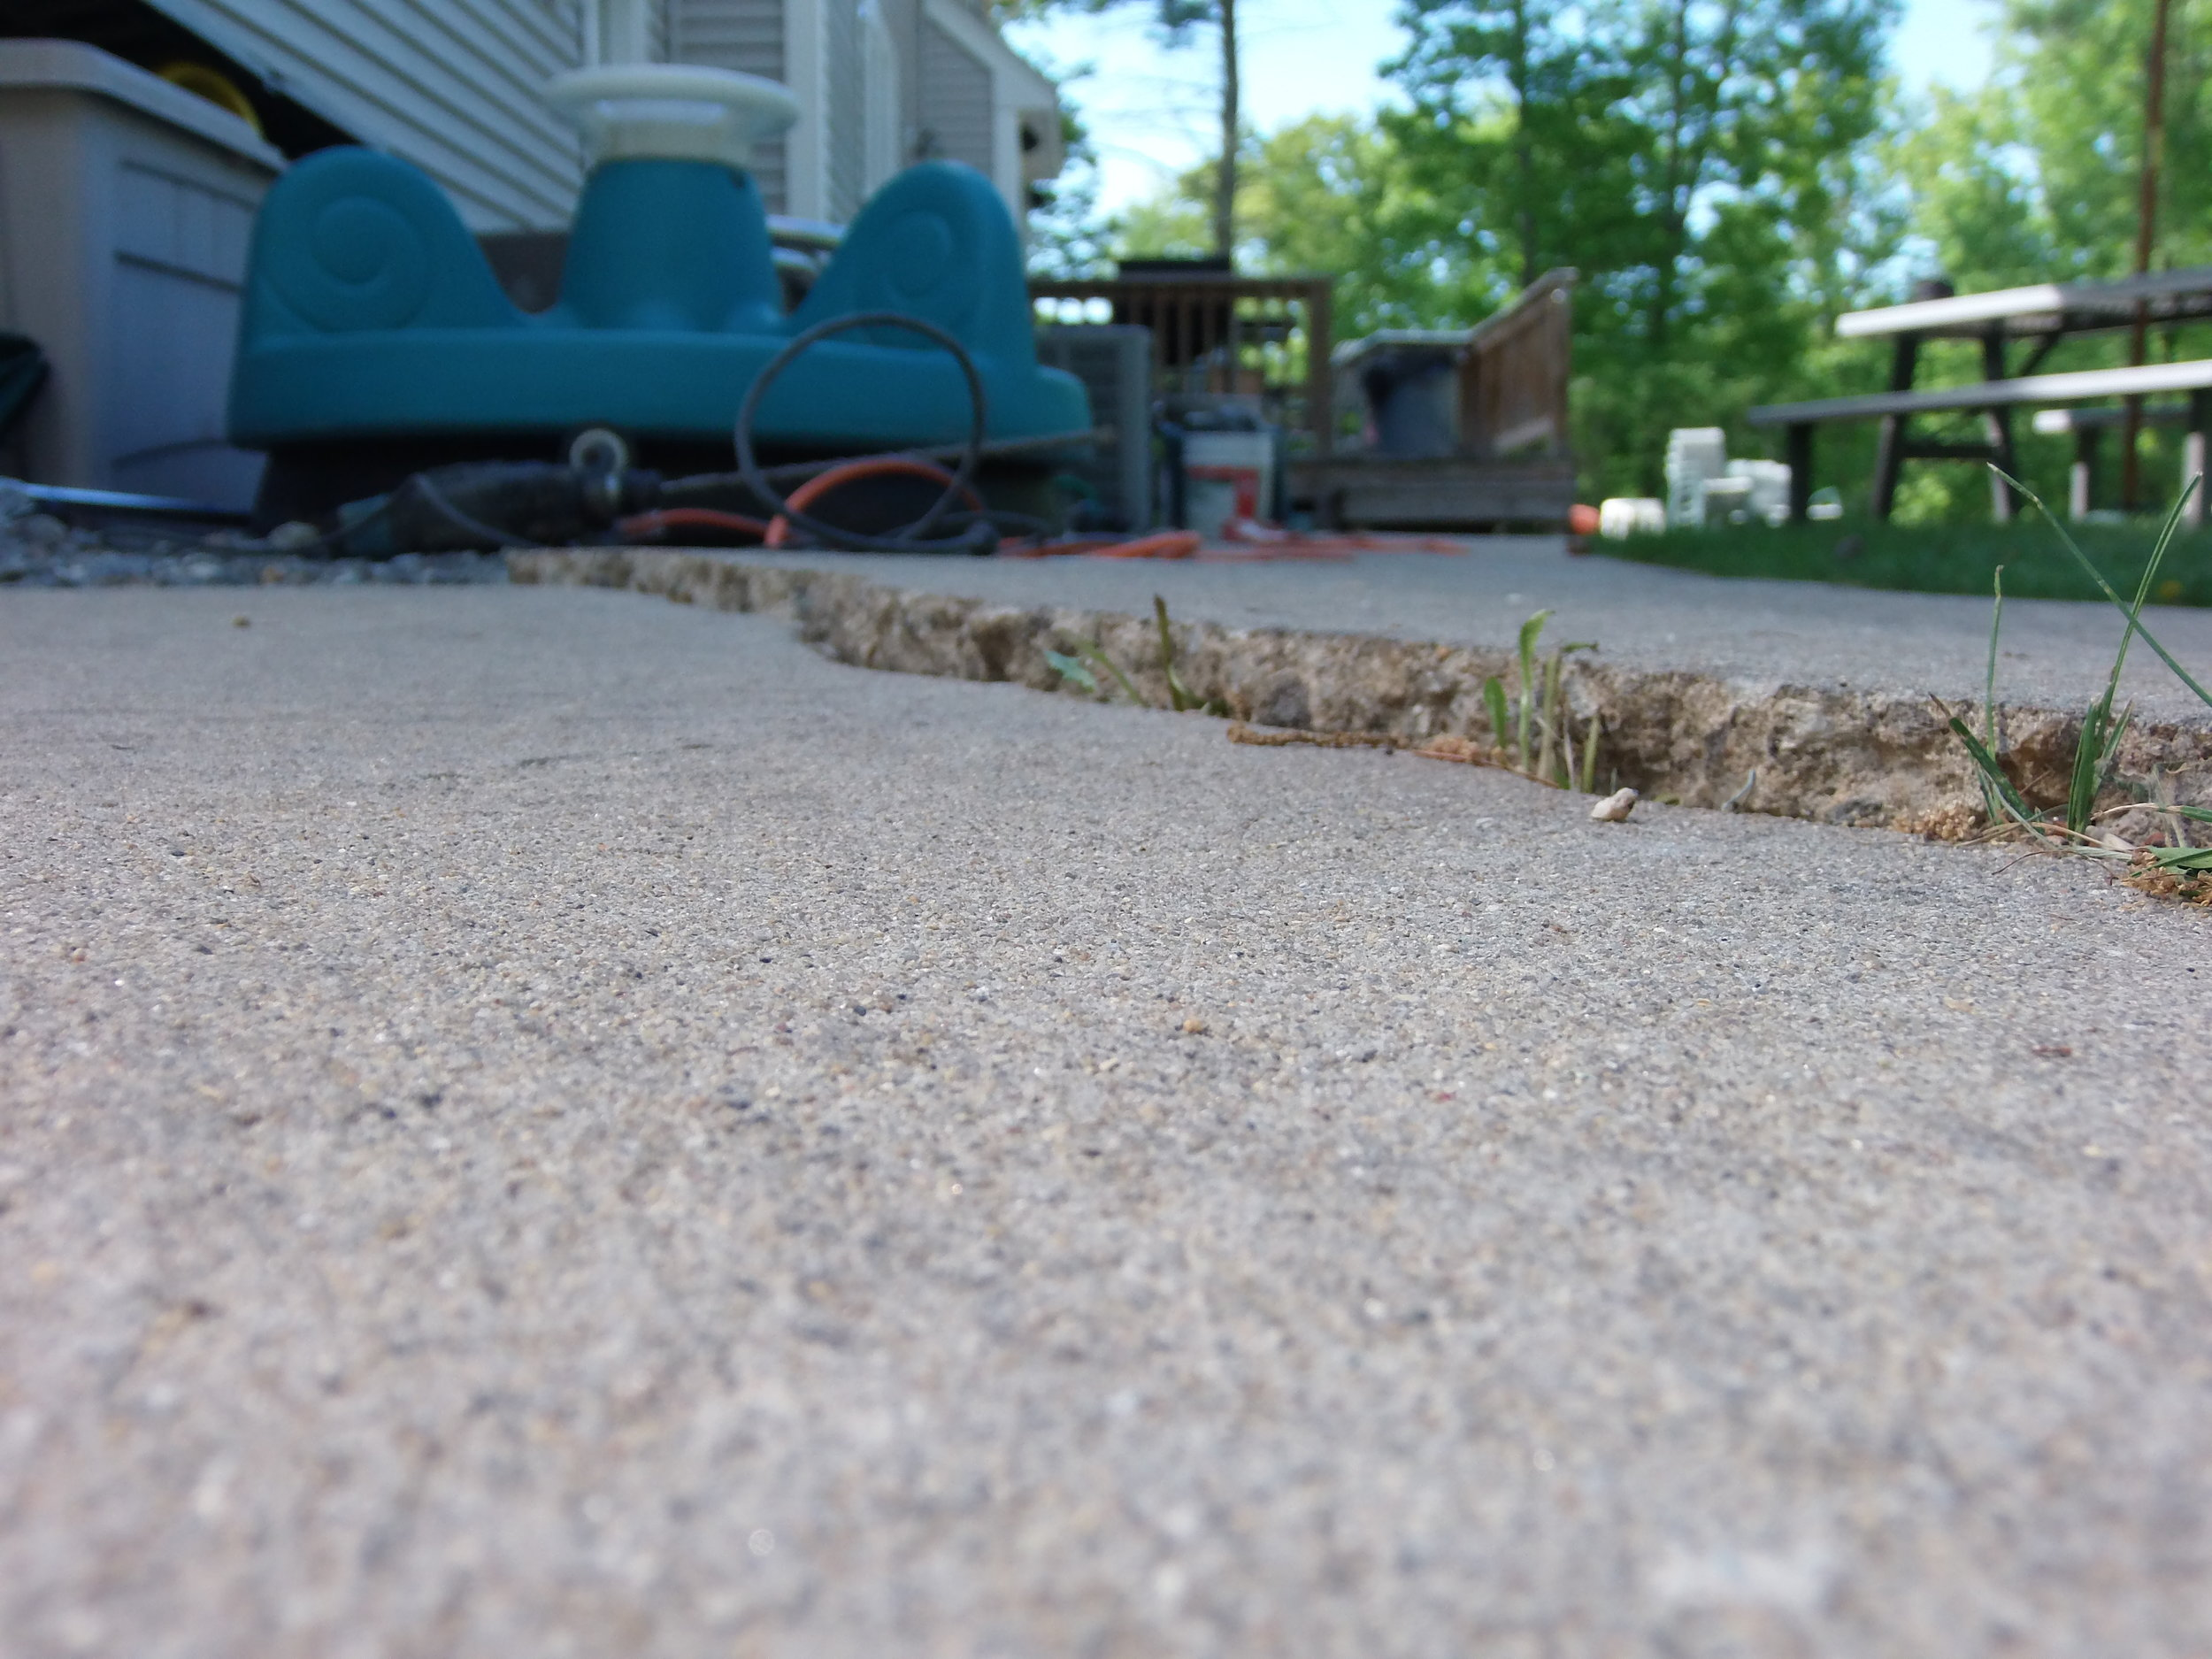 Uneven patios or sidewalks